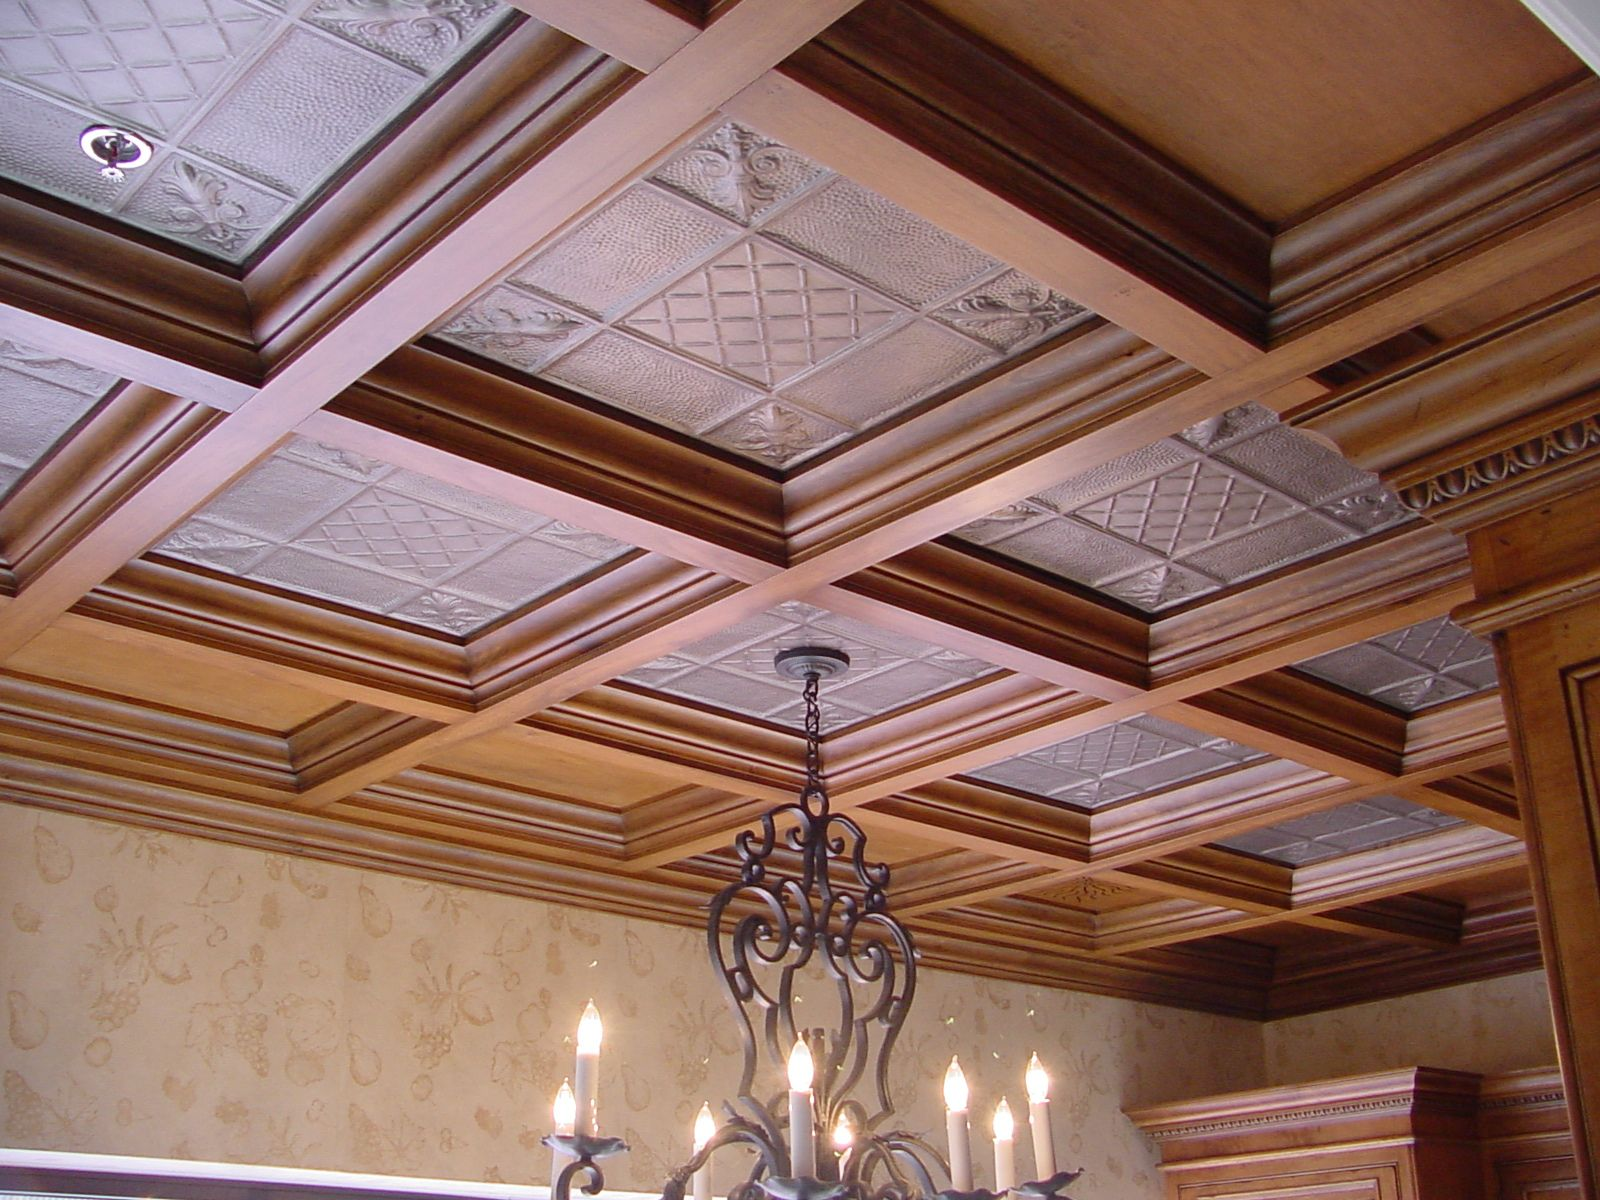 Our coffered ceiling system is designed to provide the classic look of a traditional coffered wood ceiling with the simplicity of a standard drop ceiling